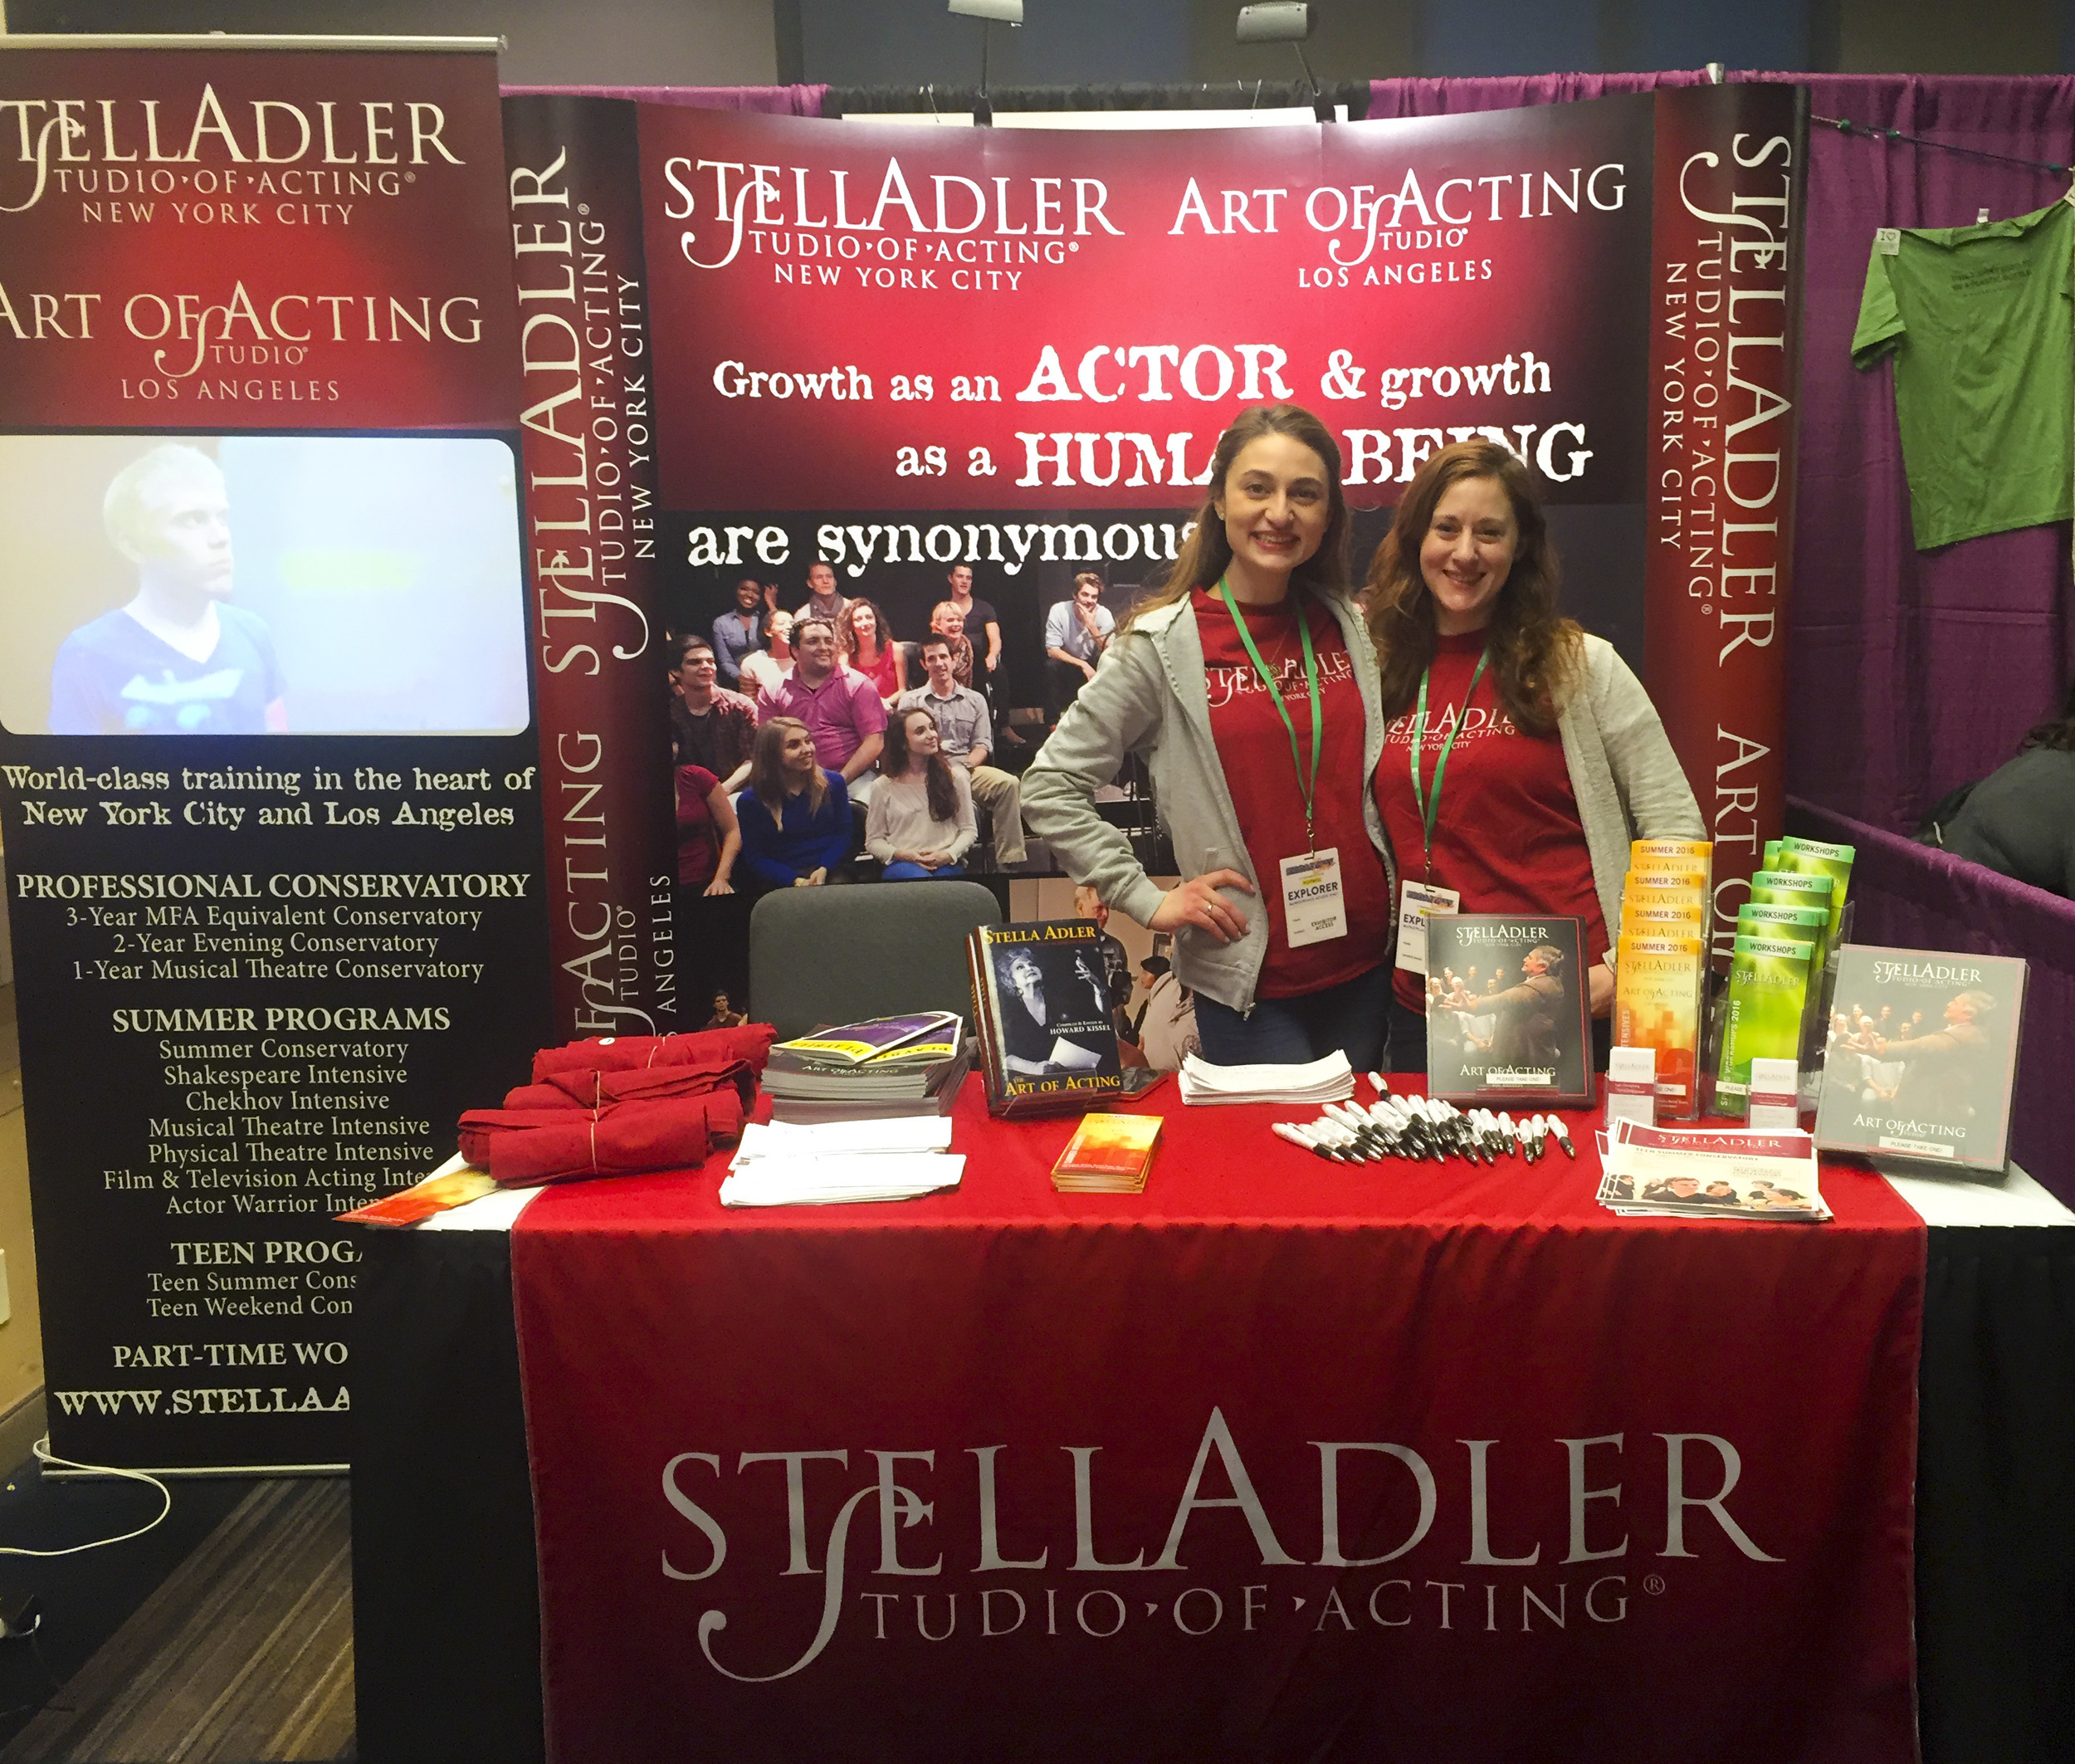 Stella Adler Trade Show Booth